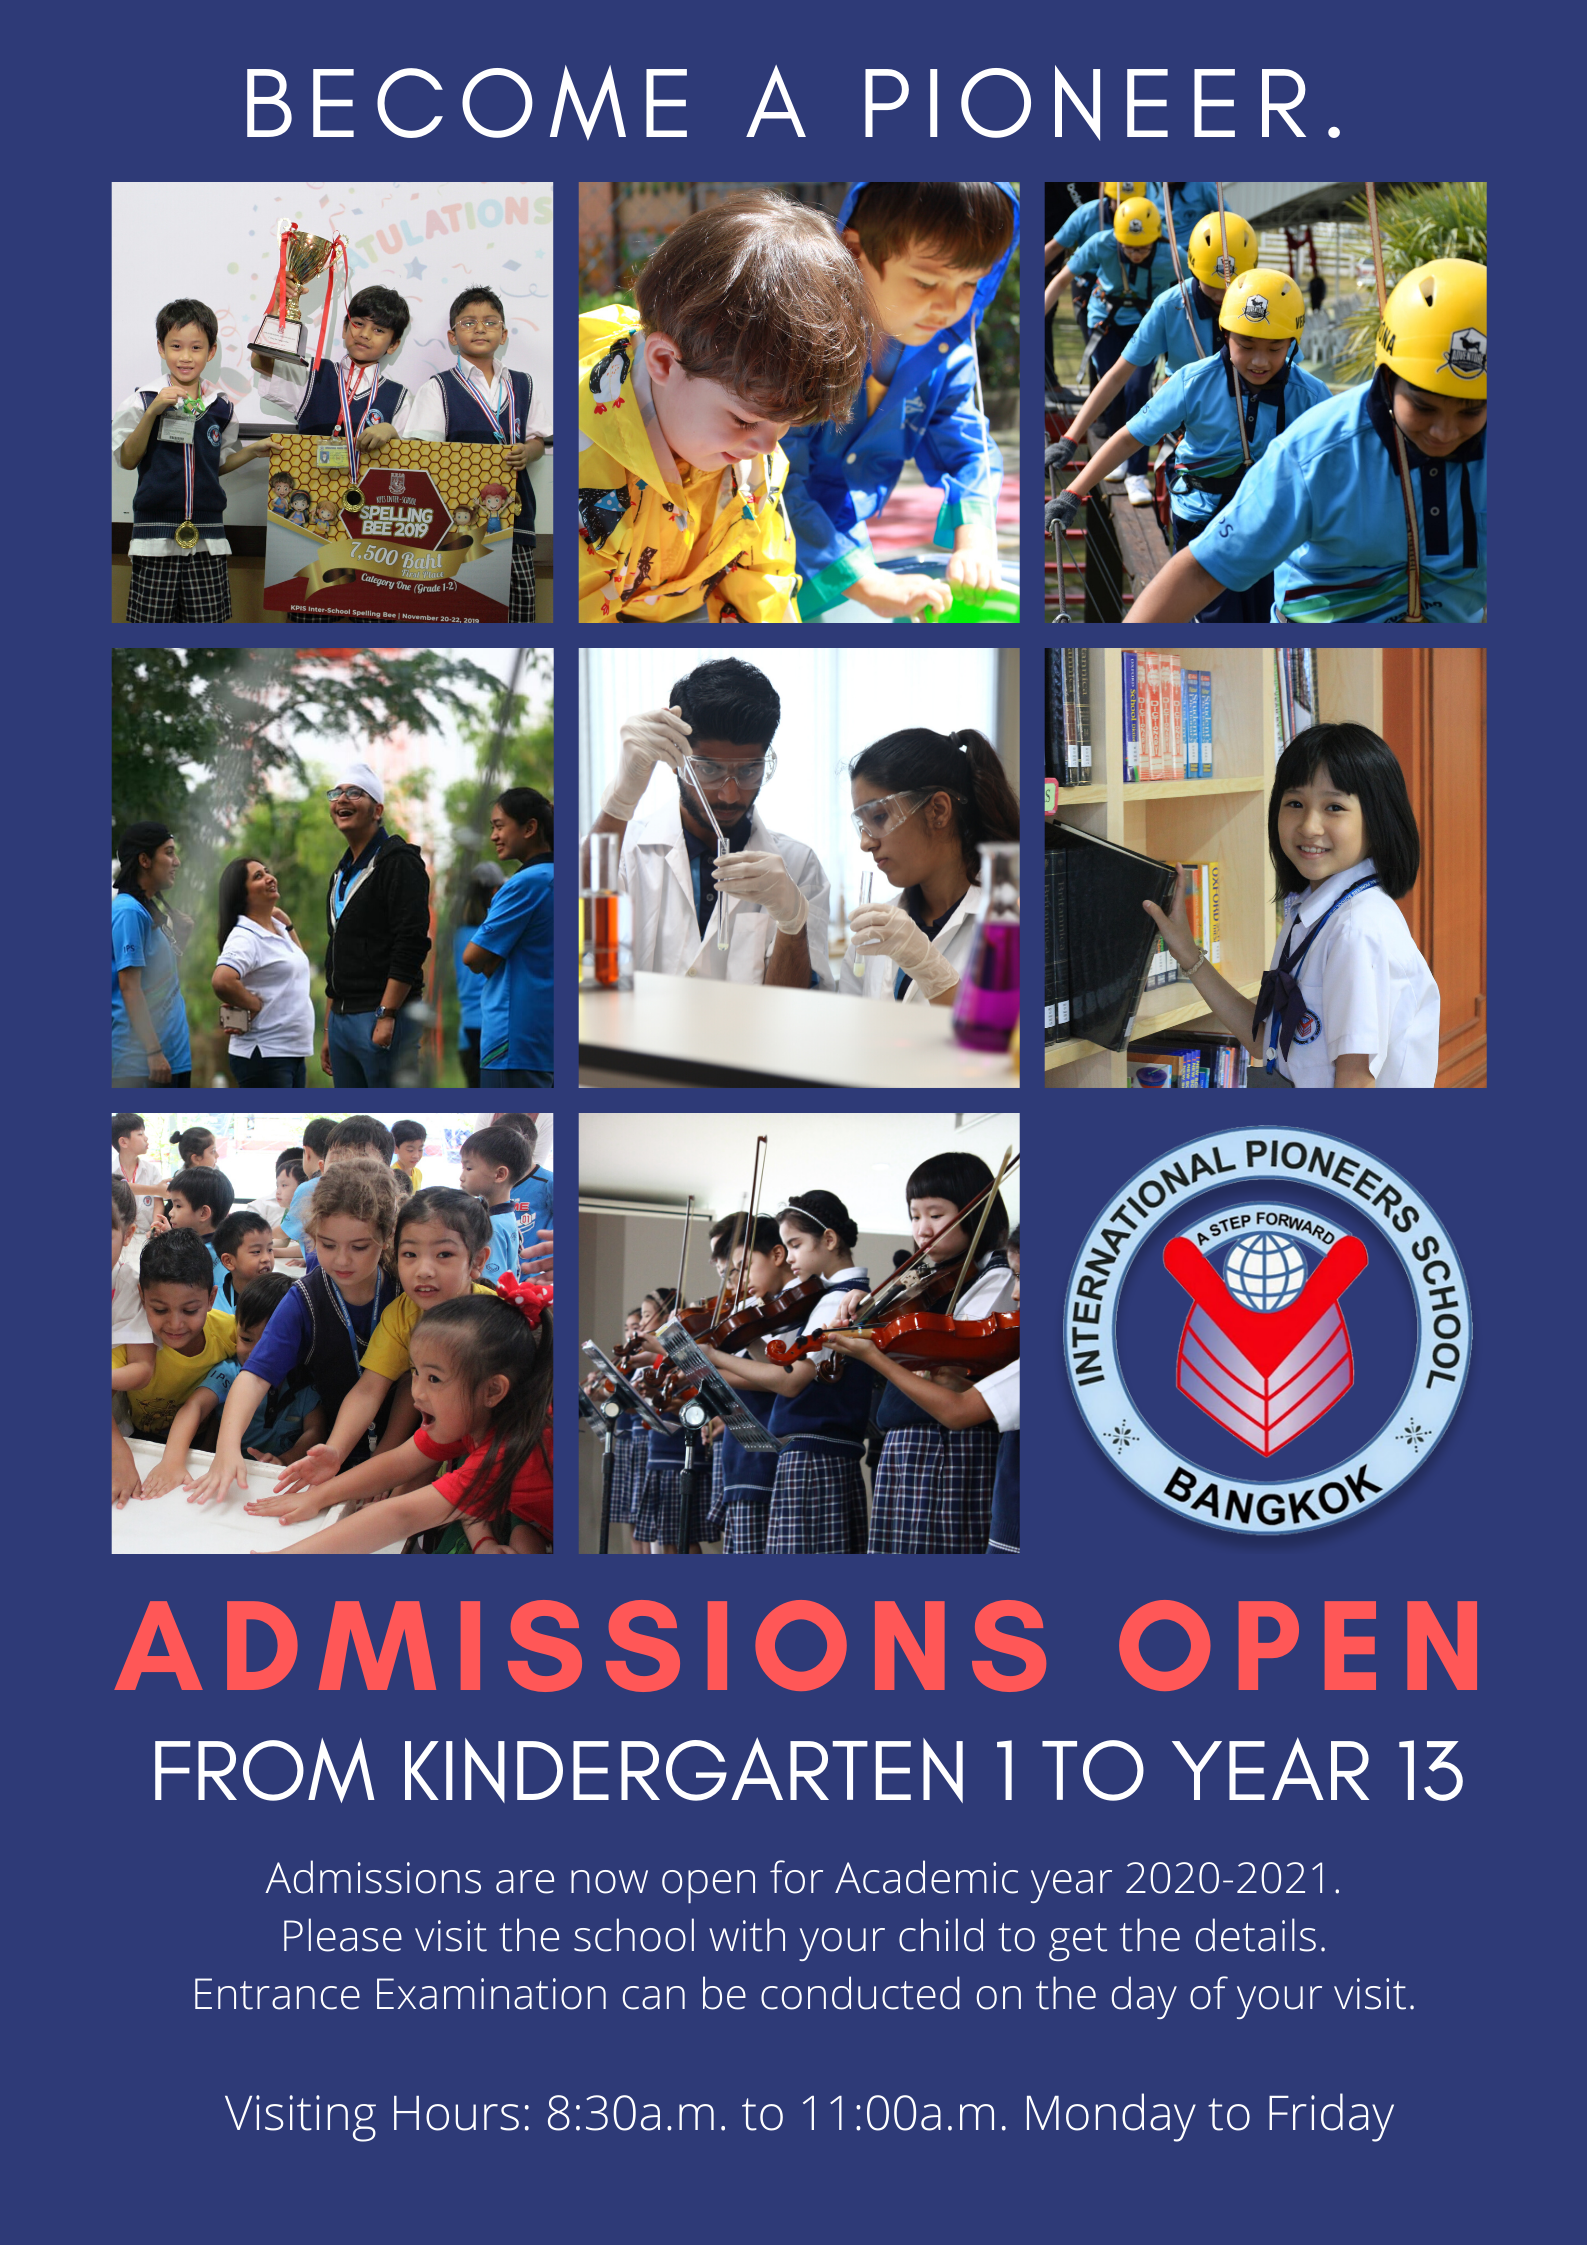 New Admissions from Kindergarten 1 to Year 13 for AY 2020